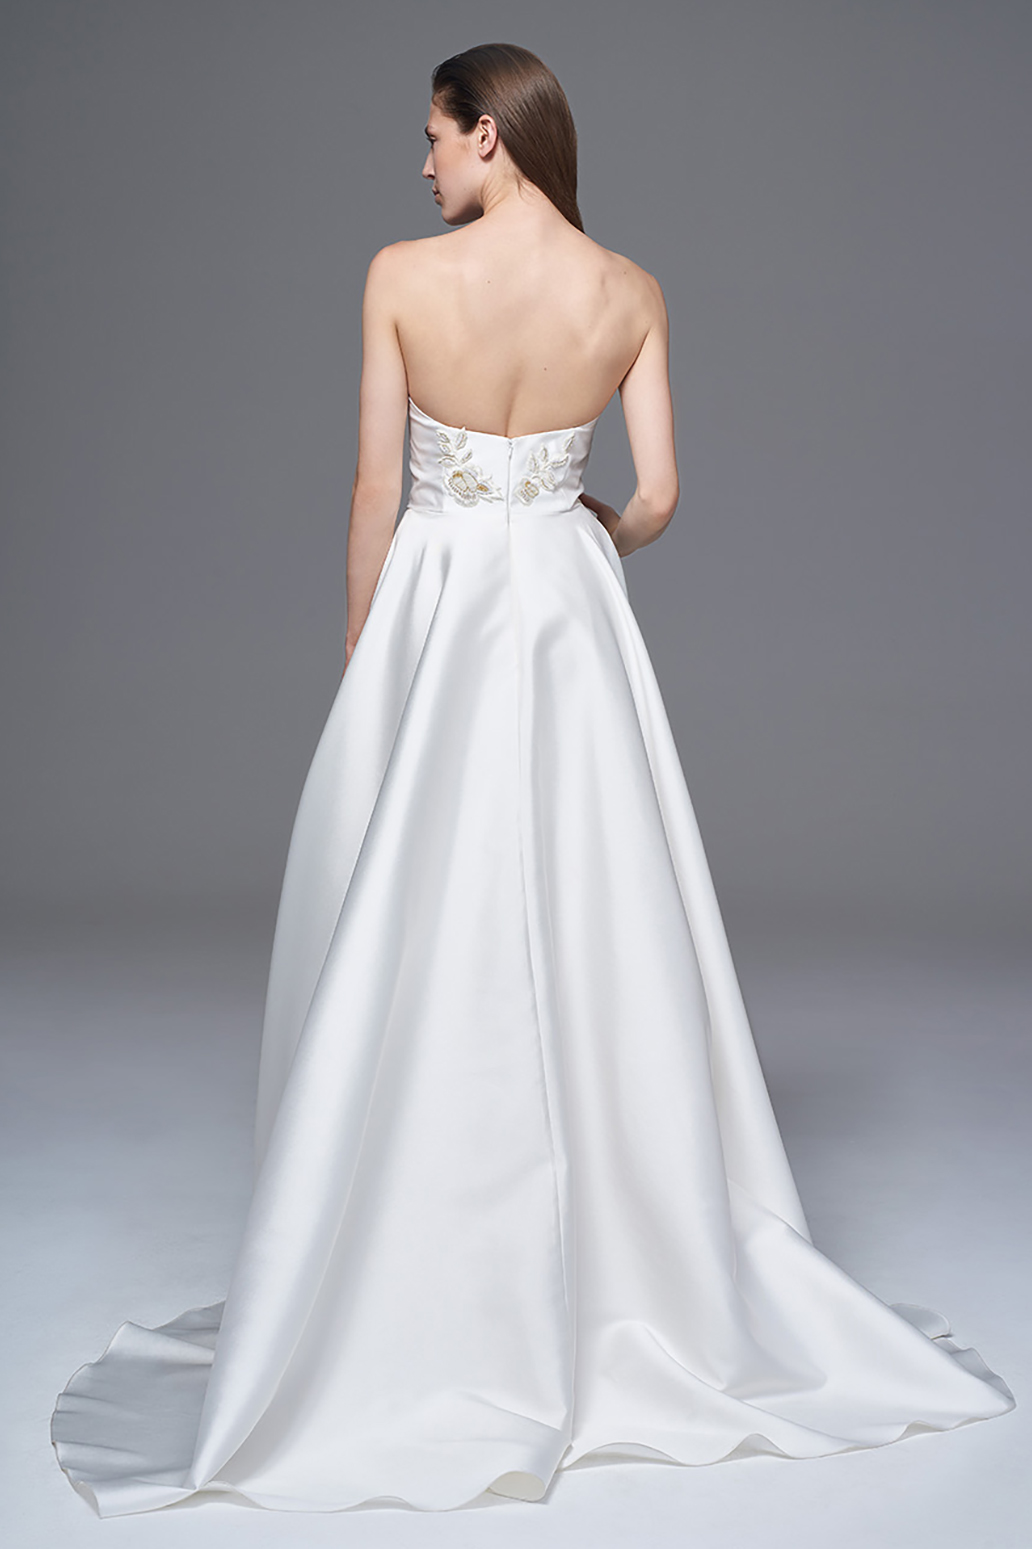 THE ELLIE STRUCTURED MIKARDO STRAPLESS DRESS WITH HAND BEADED EMBELLISHMENT. BRIDAL WEDDING DRESS BY HALFPENNY LONDON